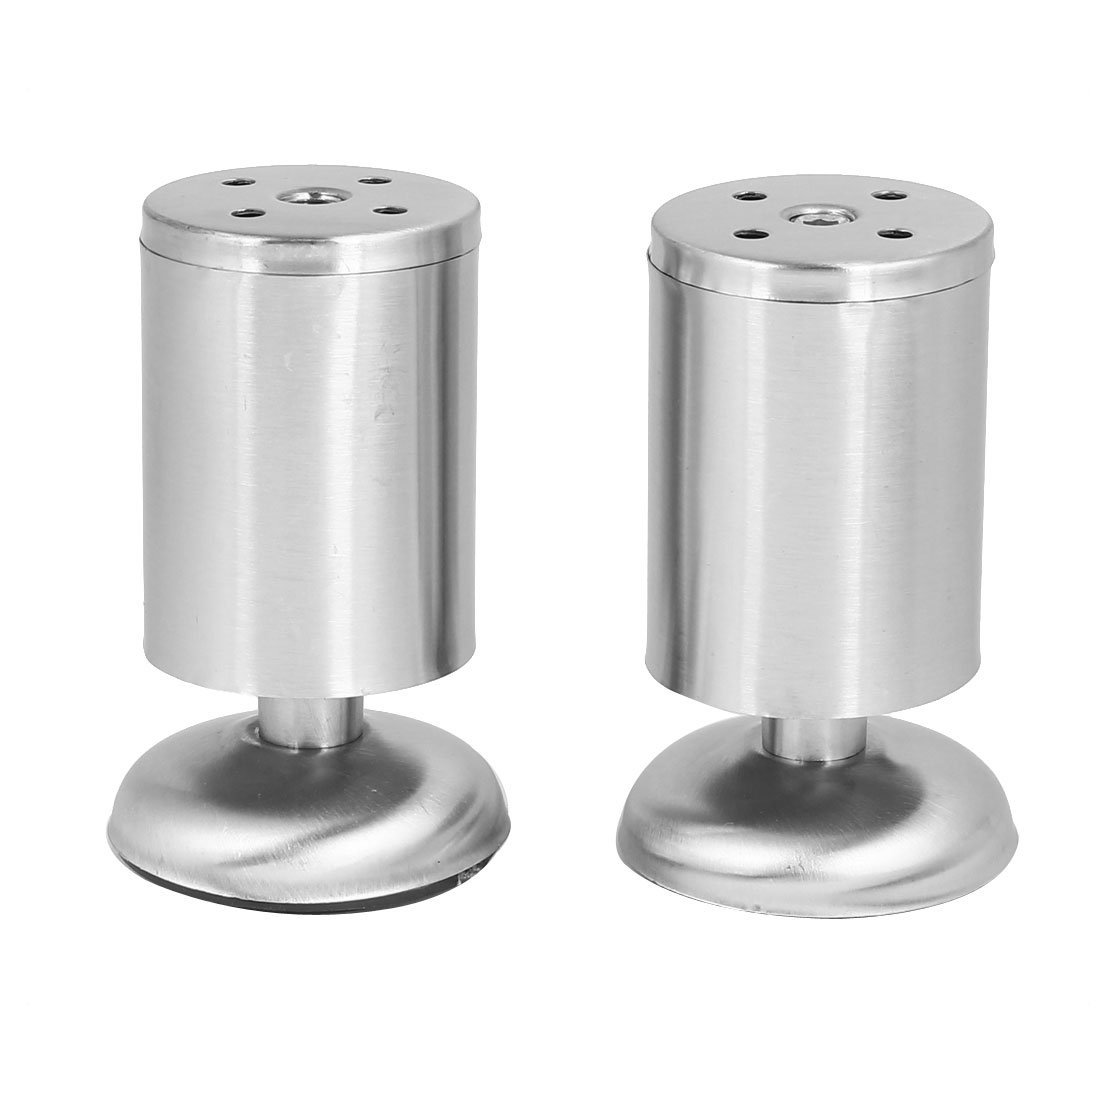 uxcell Furniture Cabinet Bed Table 50mmx100mm Round Shape Metal Adjustable Leg Feet 2pcs